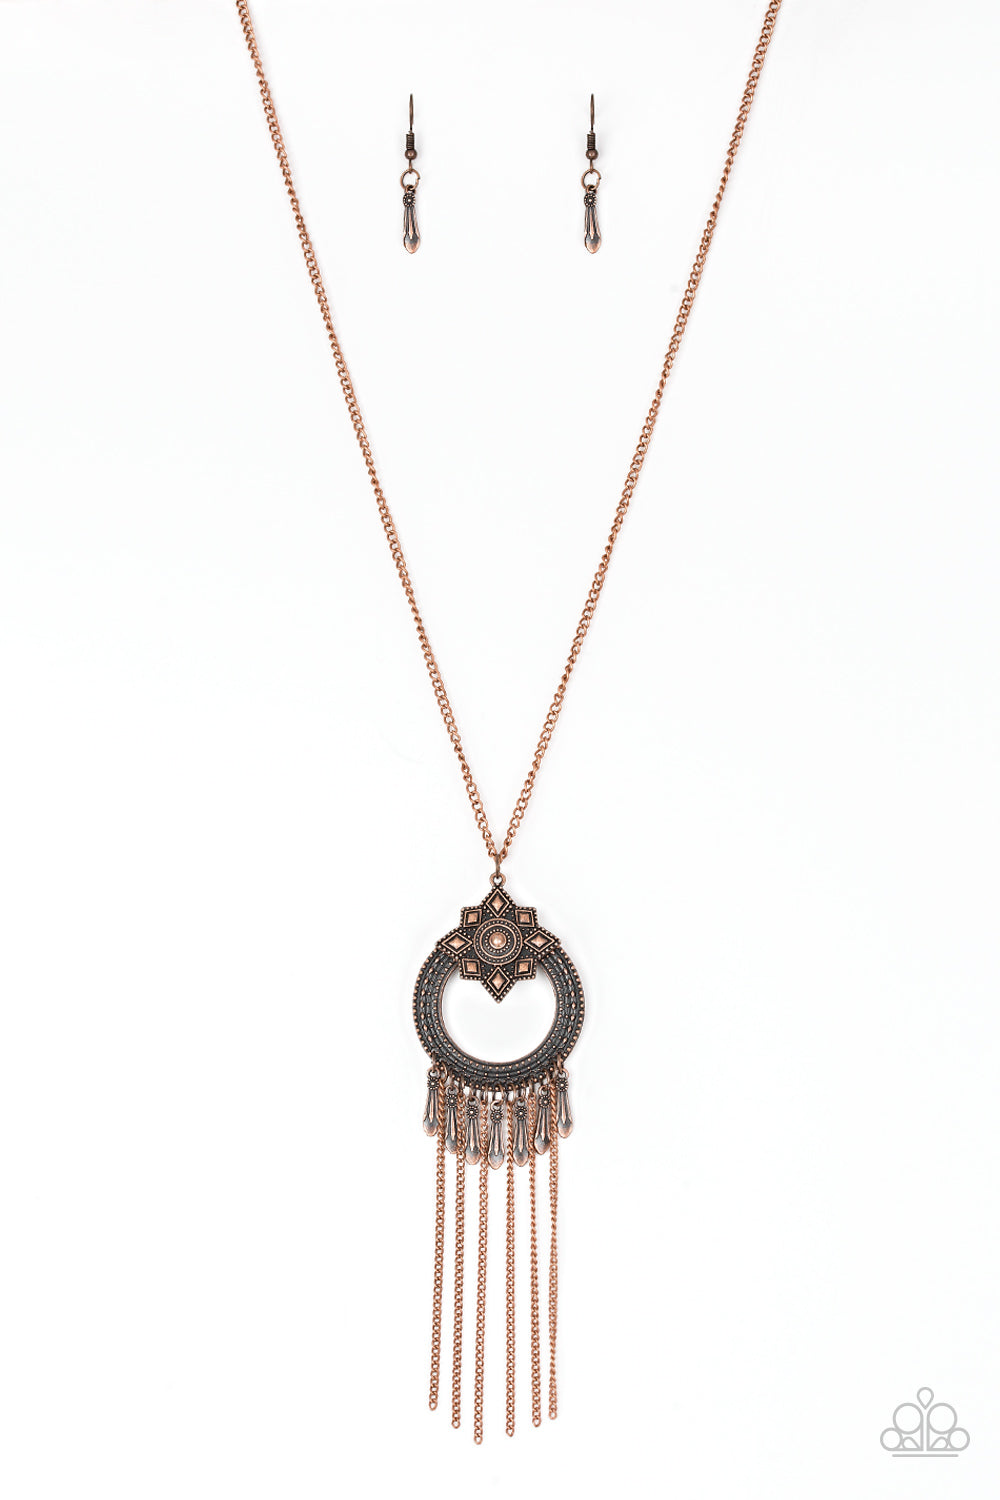 My Main MANTRA Copper Necklace